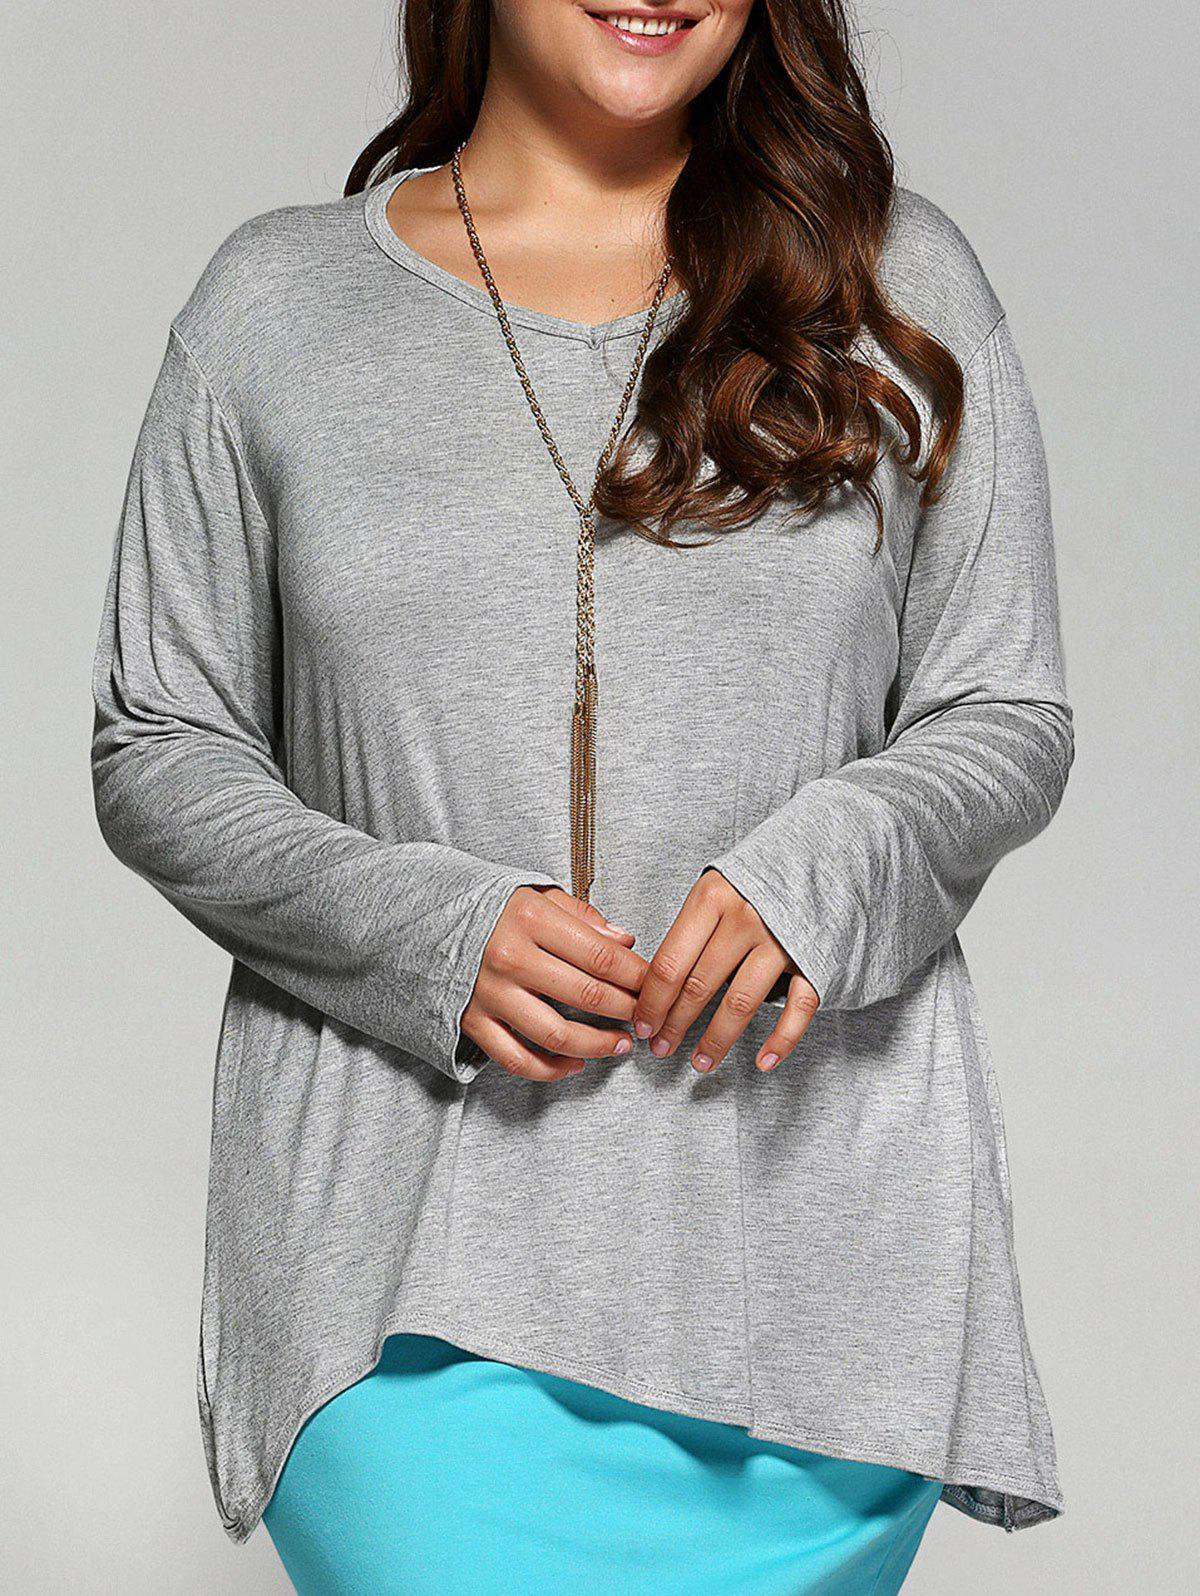 Vrac Asymmetric long T-shirt